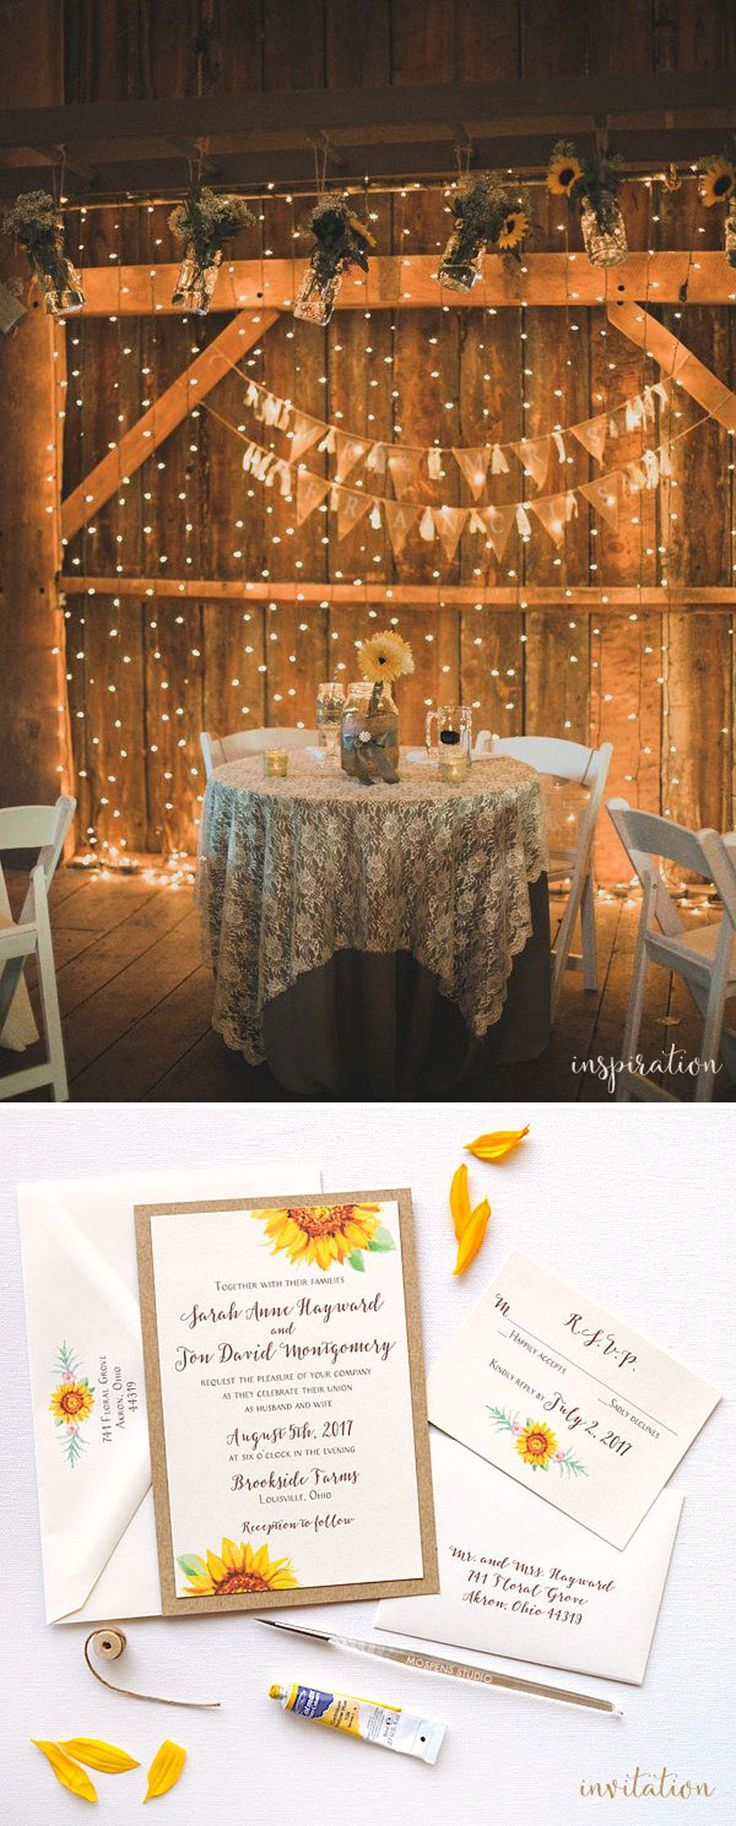 Charming rustic wedding ideas - Twinkling lights, sunflowers, lace and burlap goes perfectly with sweet watercolor sunflower wedding invitations - www.mospensstudio.com #weddingideas